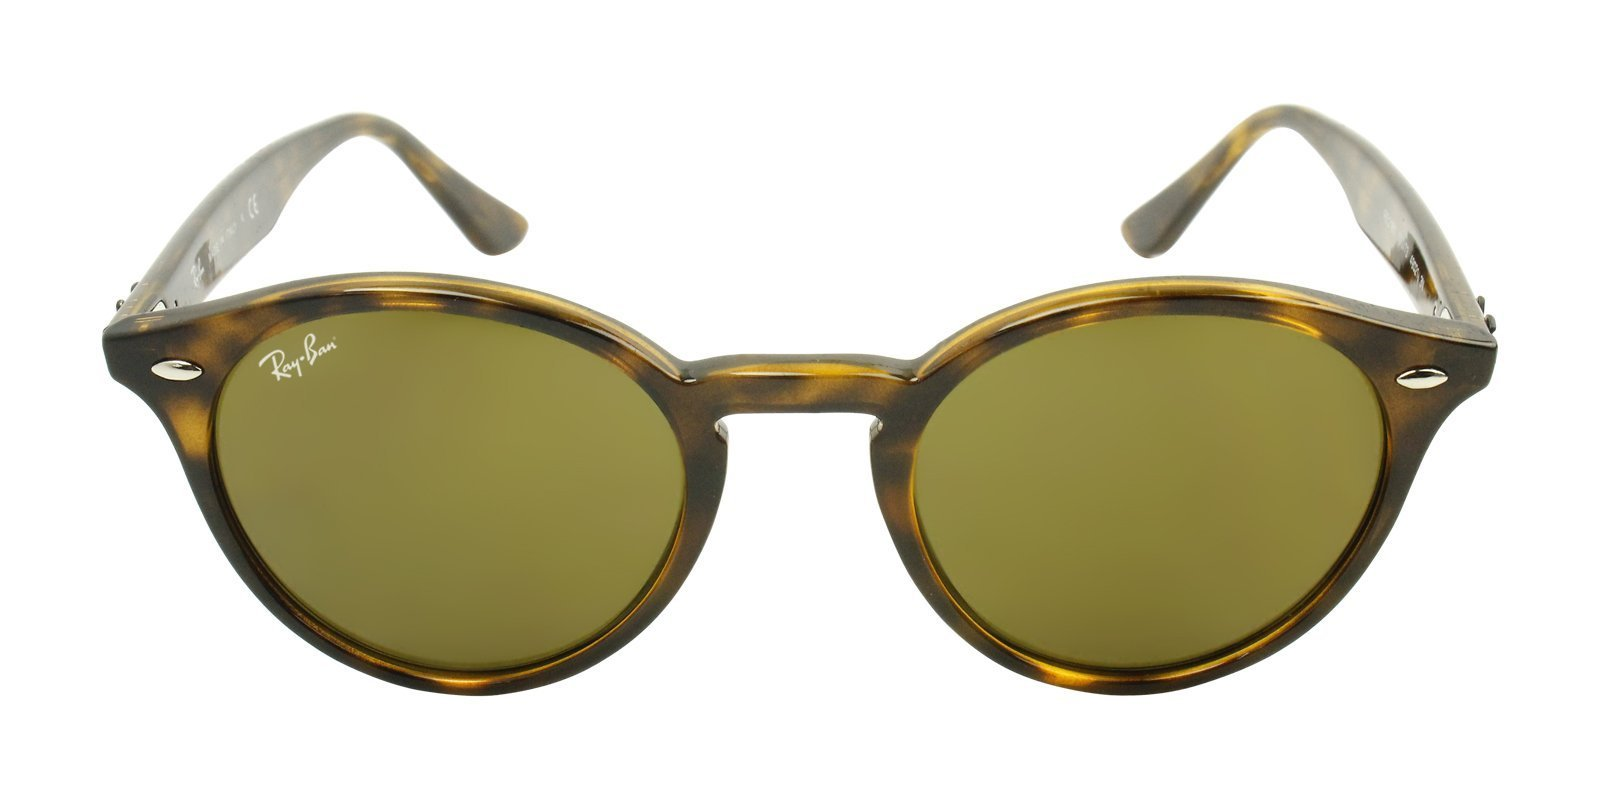 7bff4d2cbdb Ray Ban - RB2180 Tortoise - Green sunglasses